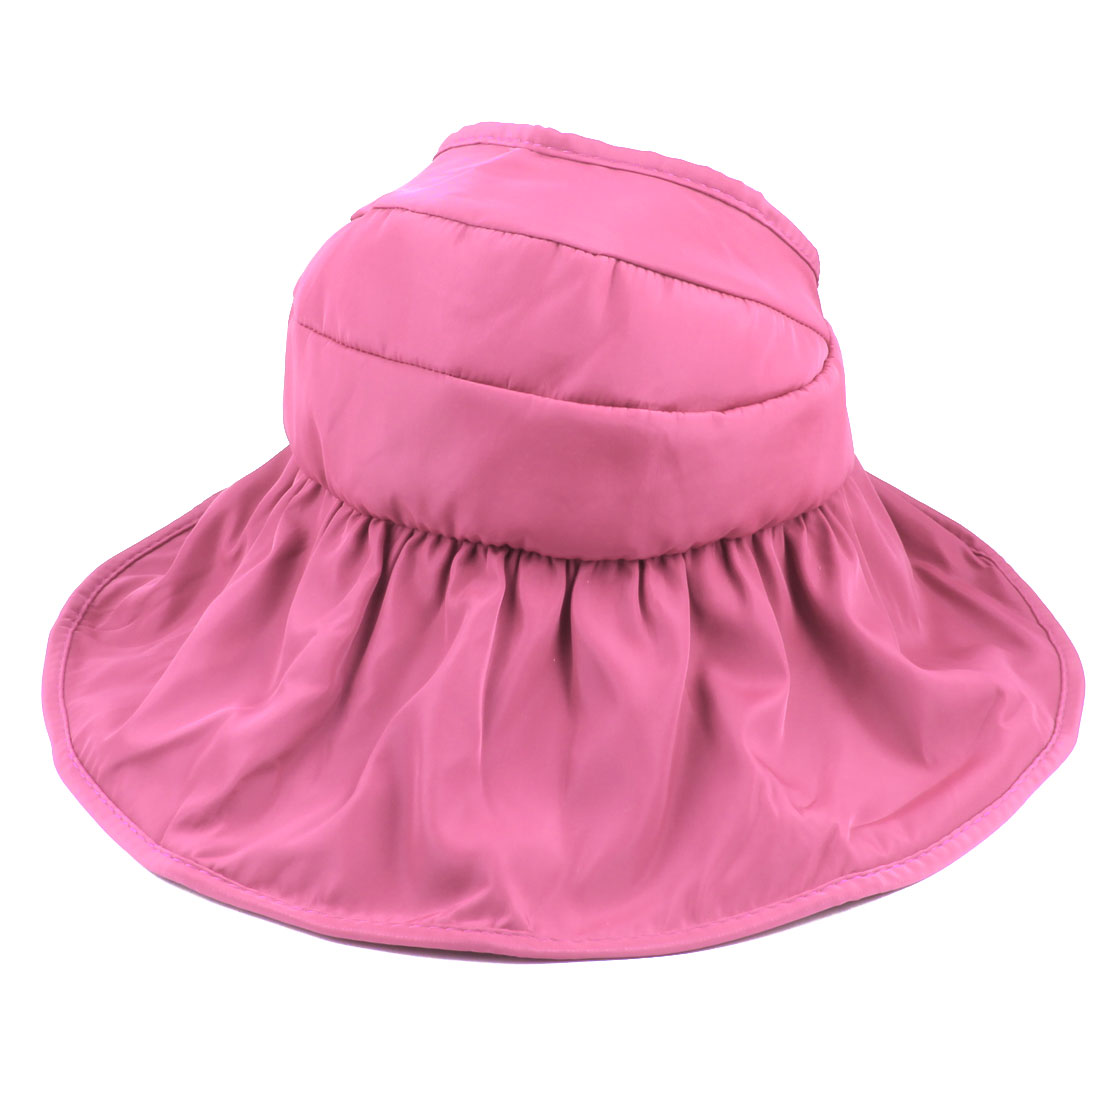 Woman Lady Summer Outdoor Holiday Wide Floppy Brim Foldable Visor Cap Sun Hat Rose Pink